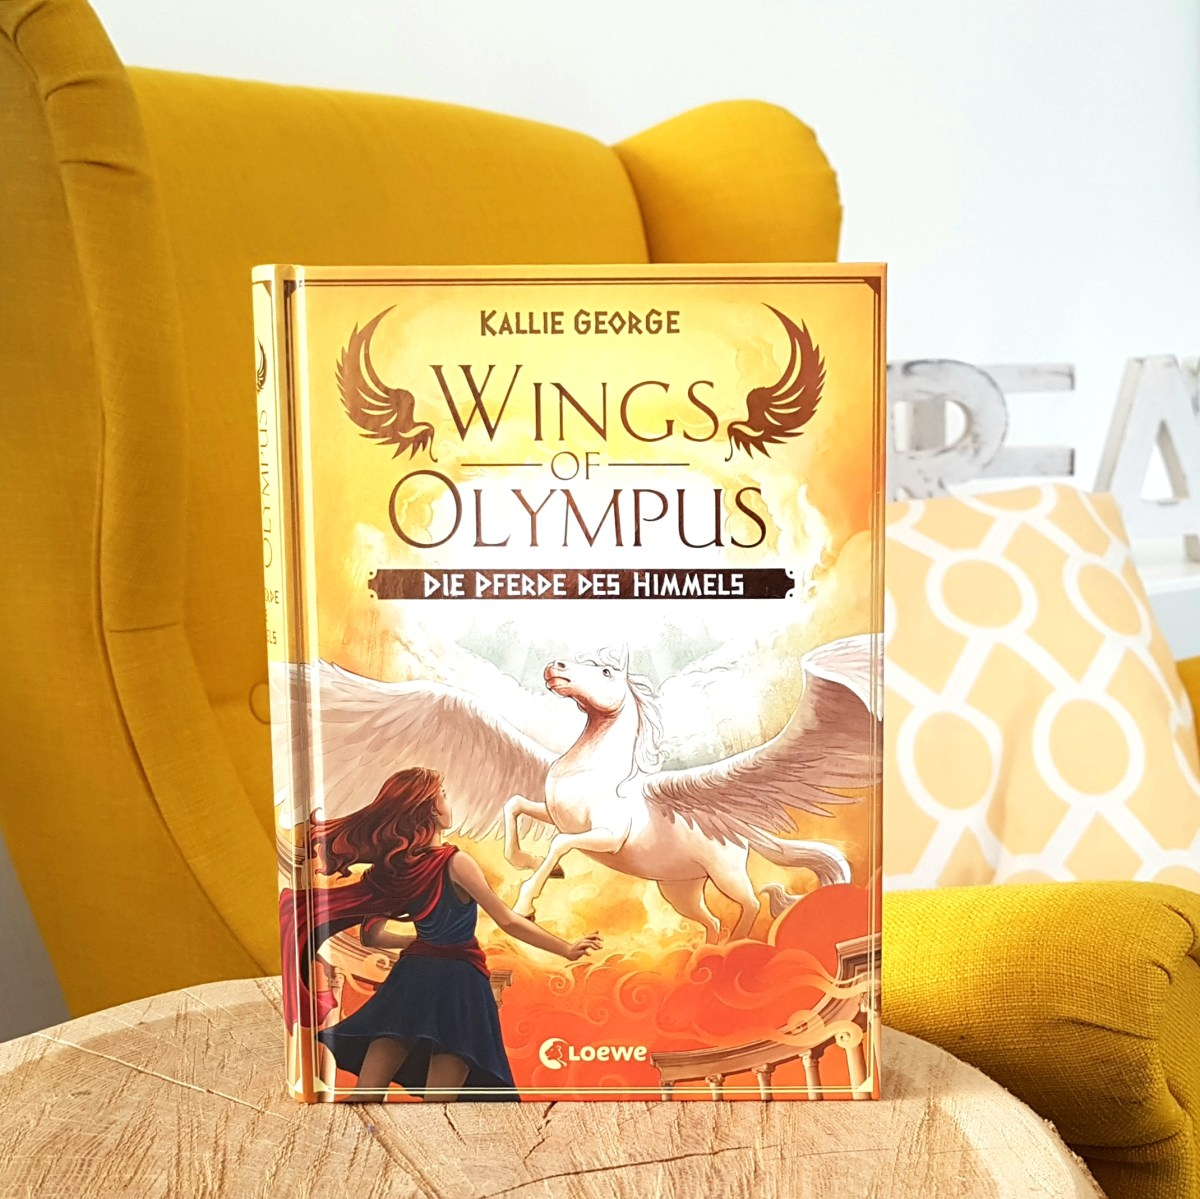 Wings of Olympus - Pferde des Himmels von Kallie George (Rezension)